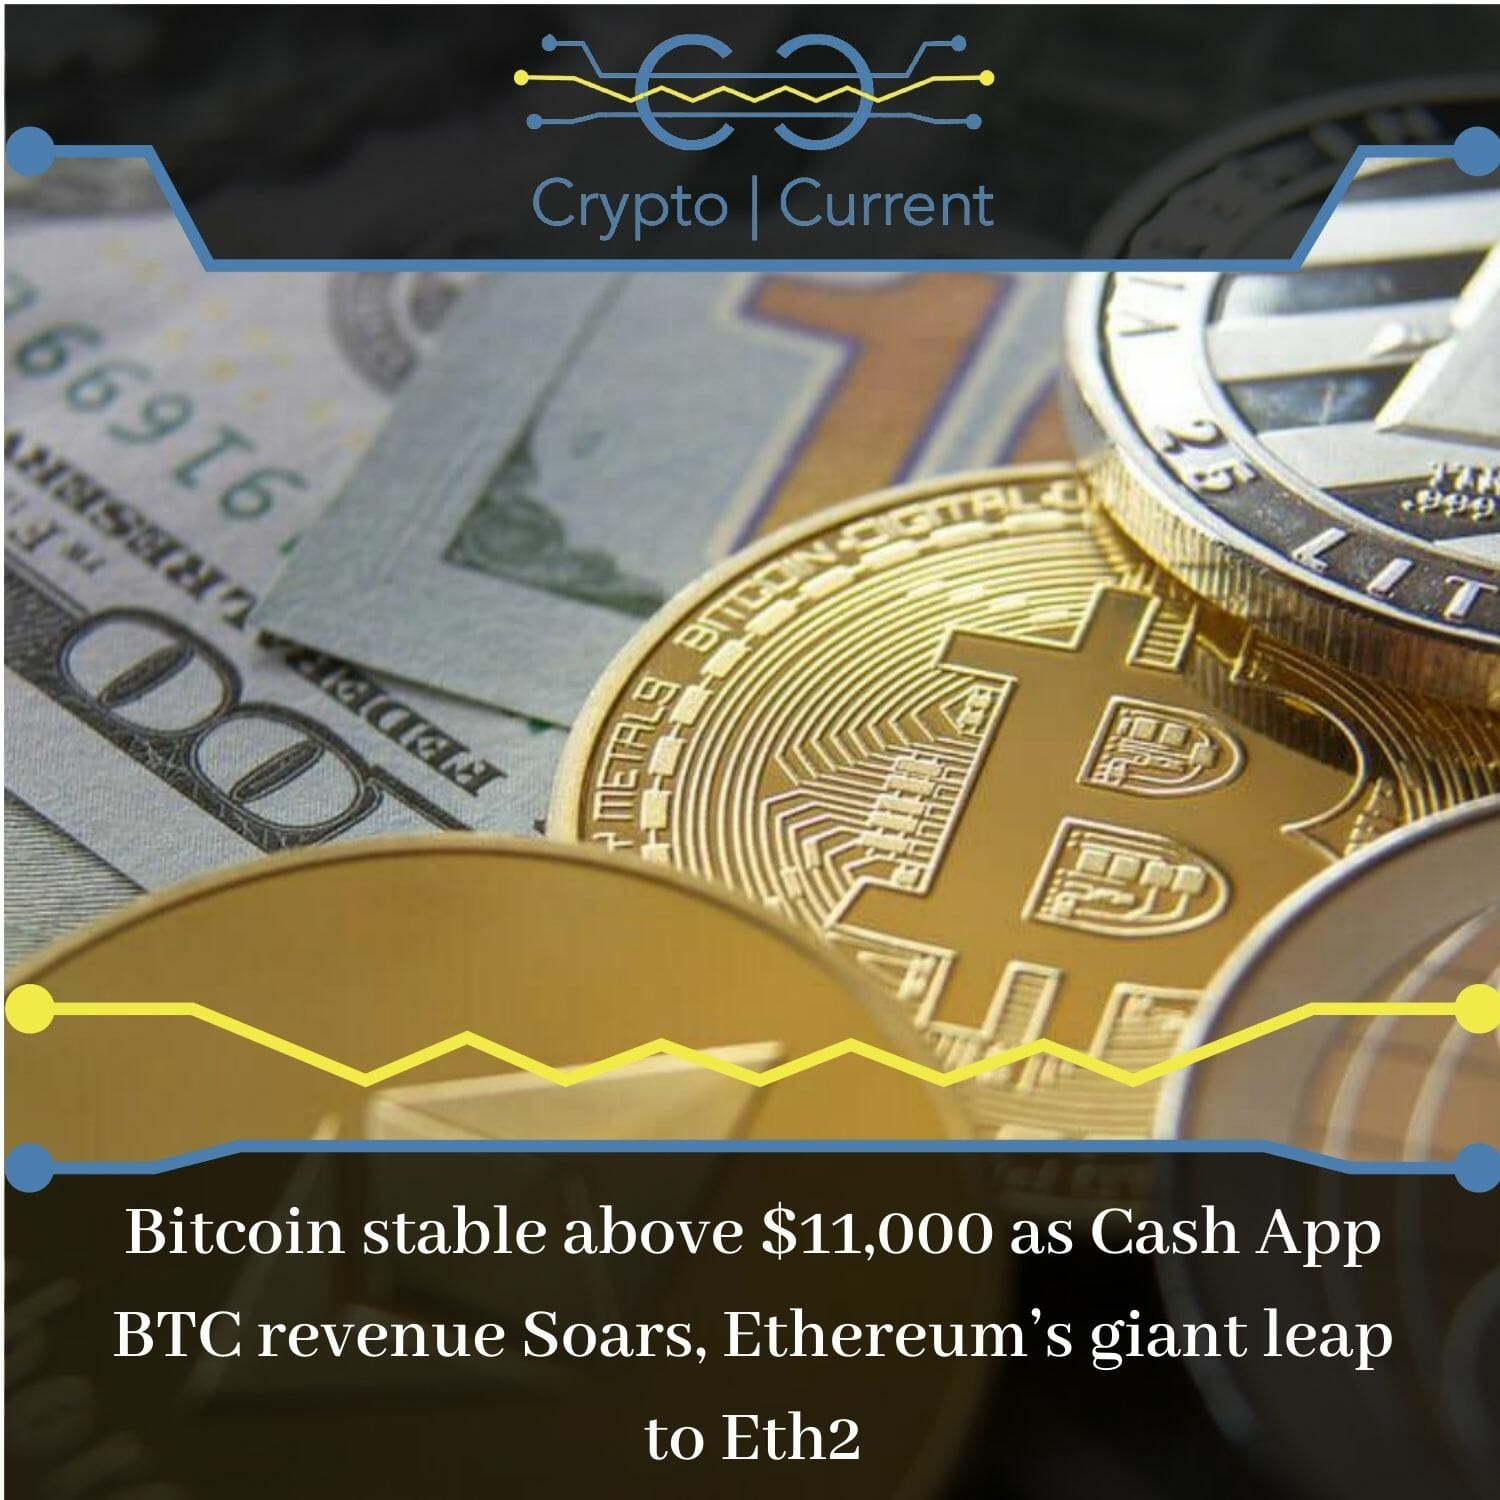 Bitcoin stable above $11,000 as Cash App BTC revenue Soars, Ethereum's giant leap to Eth2